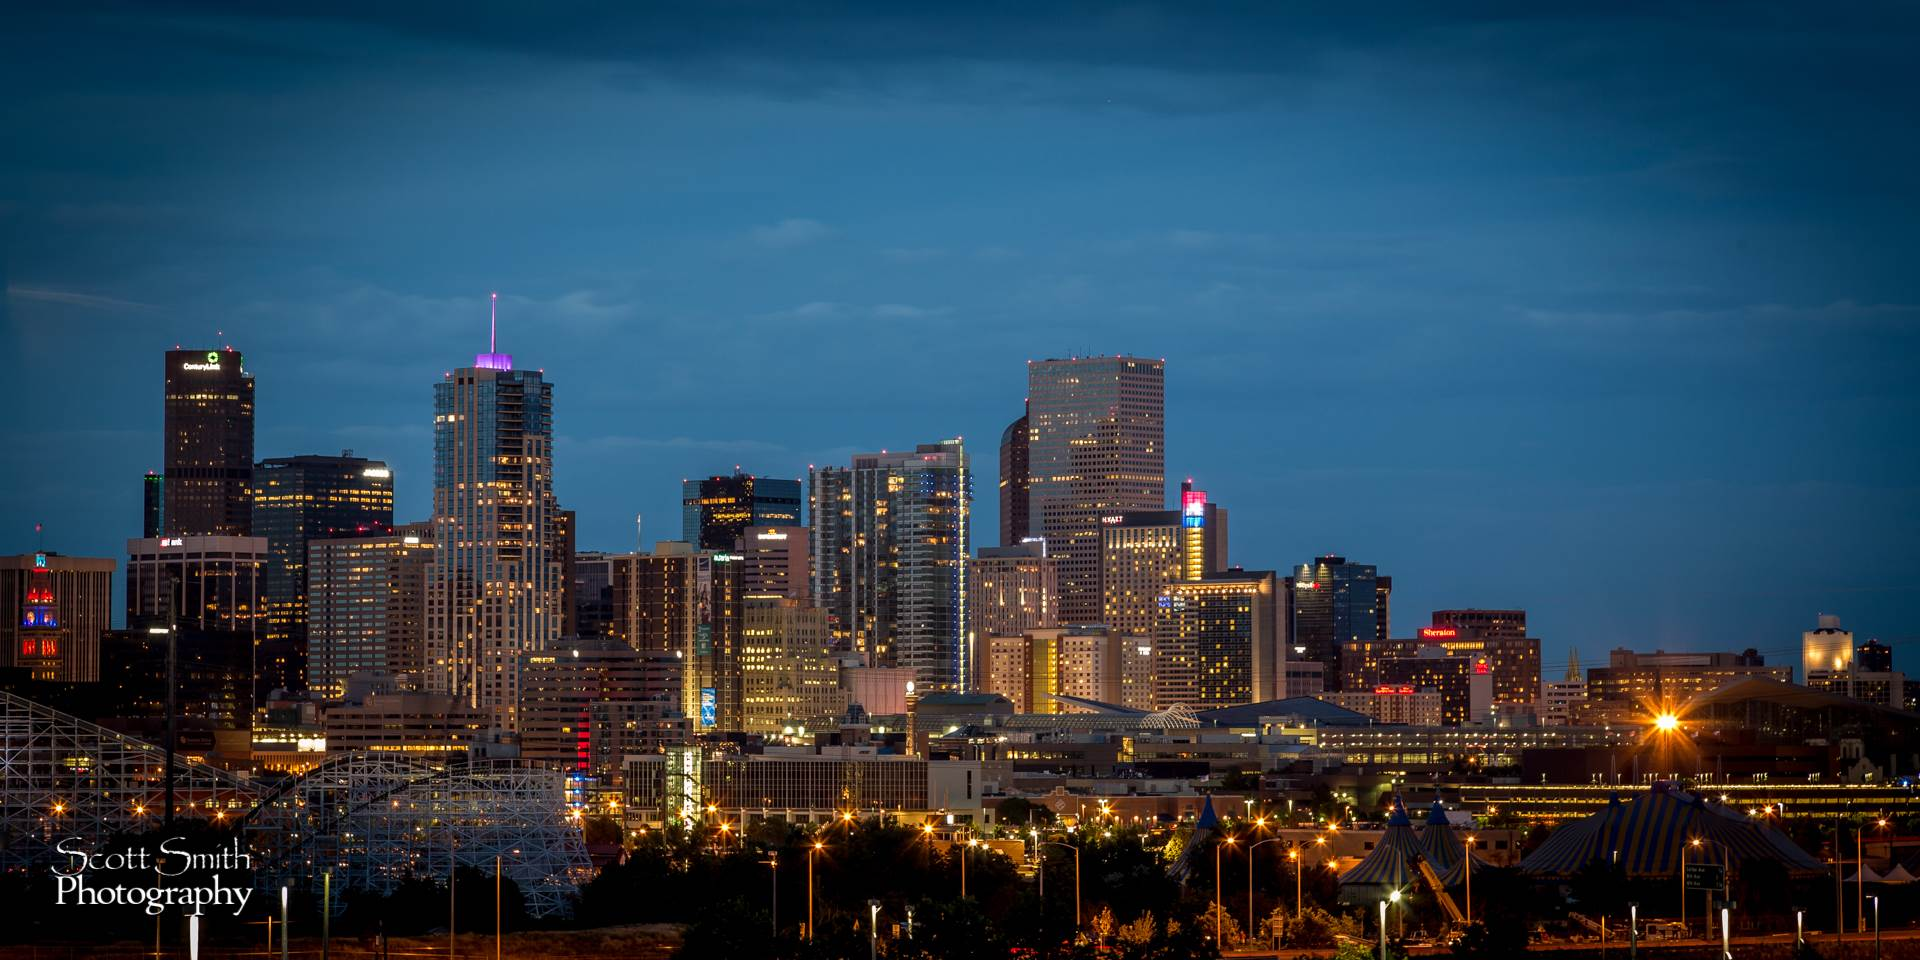 Denver at Night -  by D Scott Smith